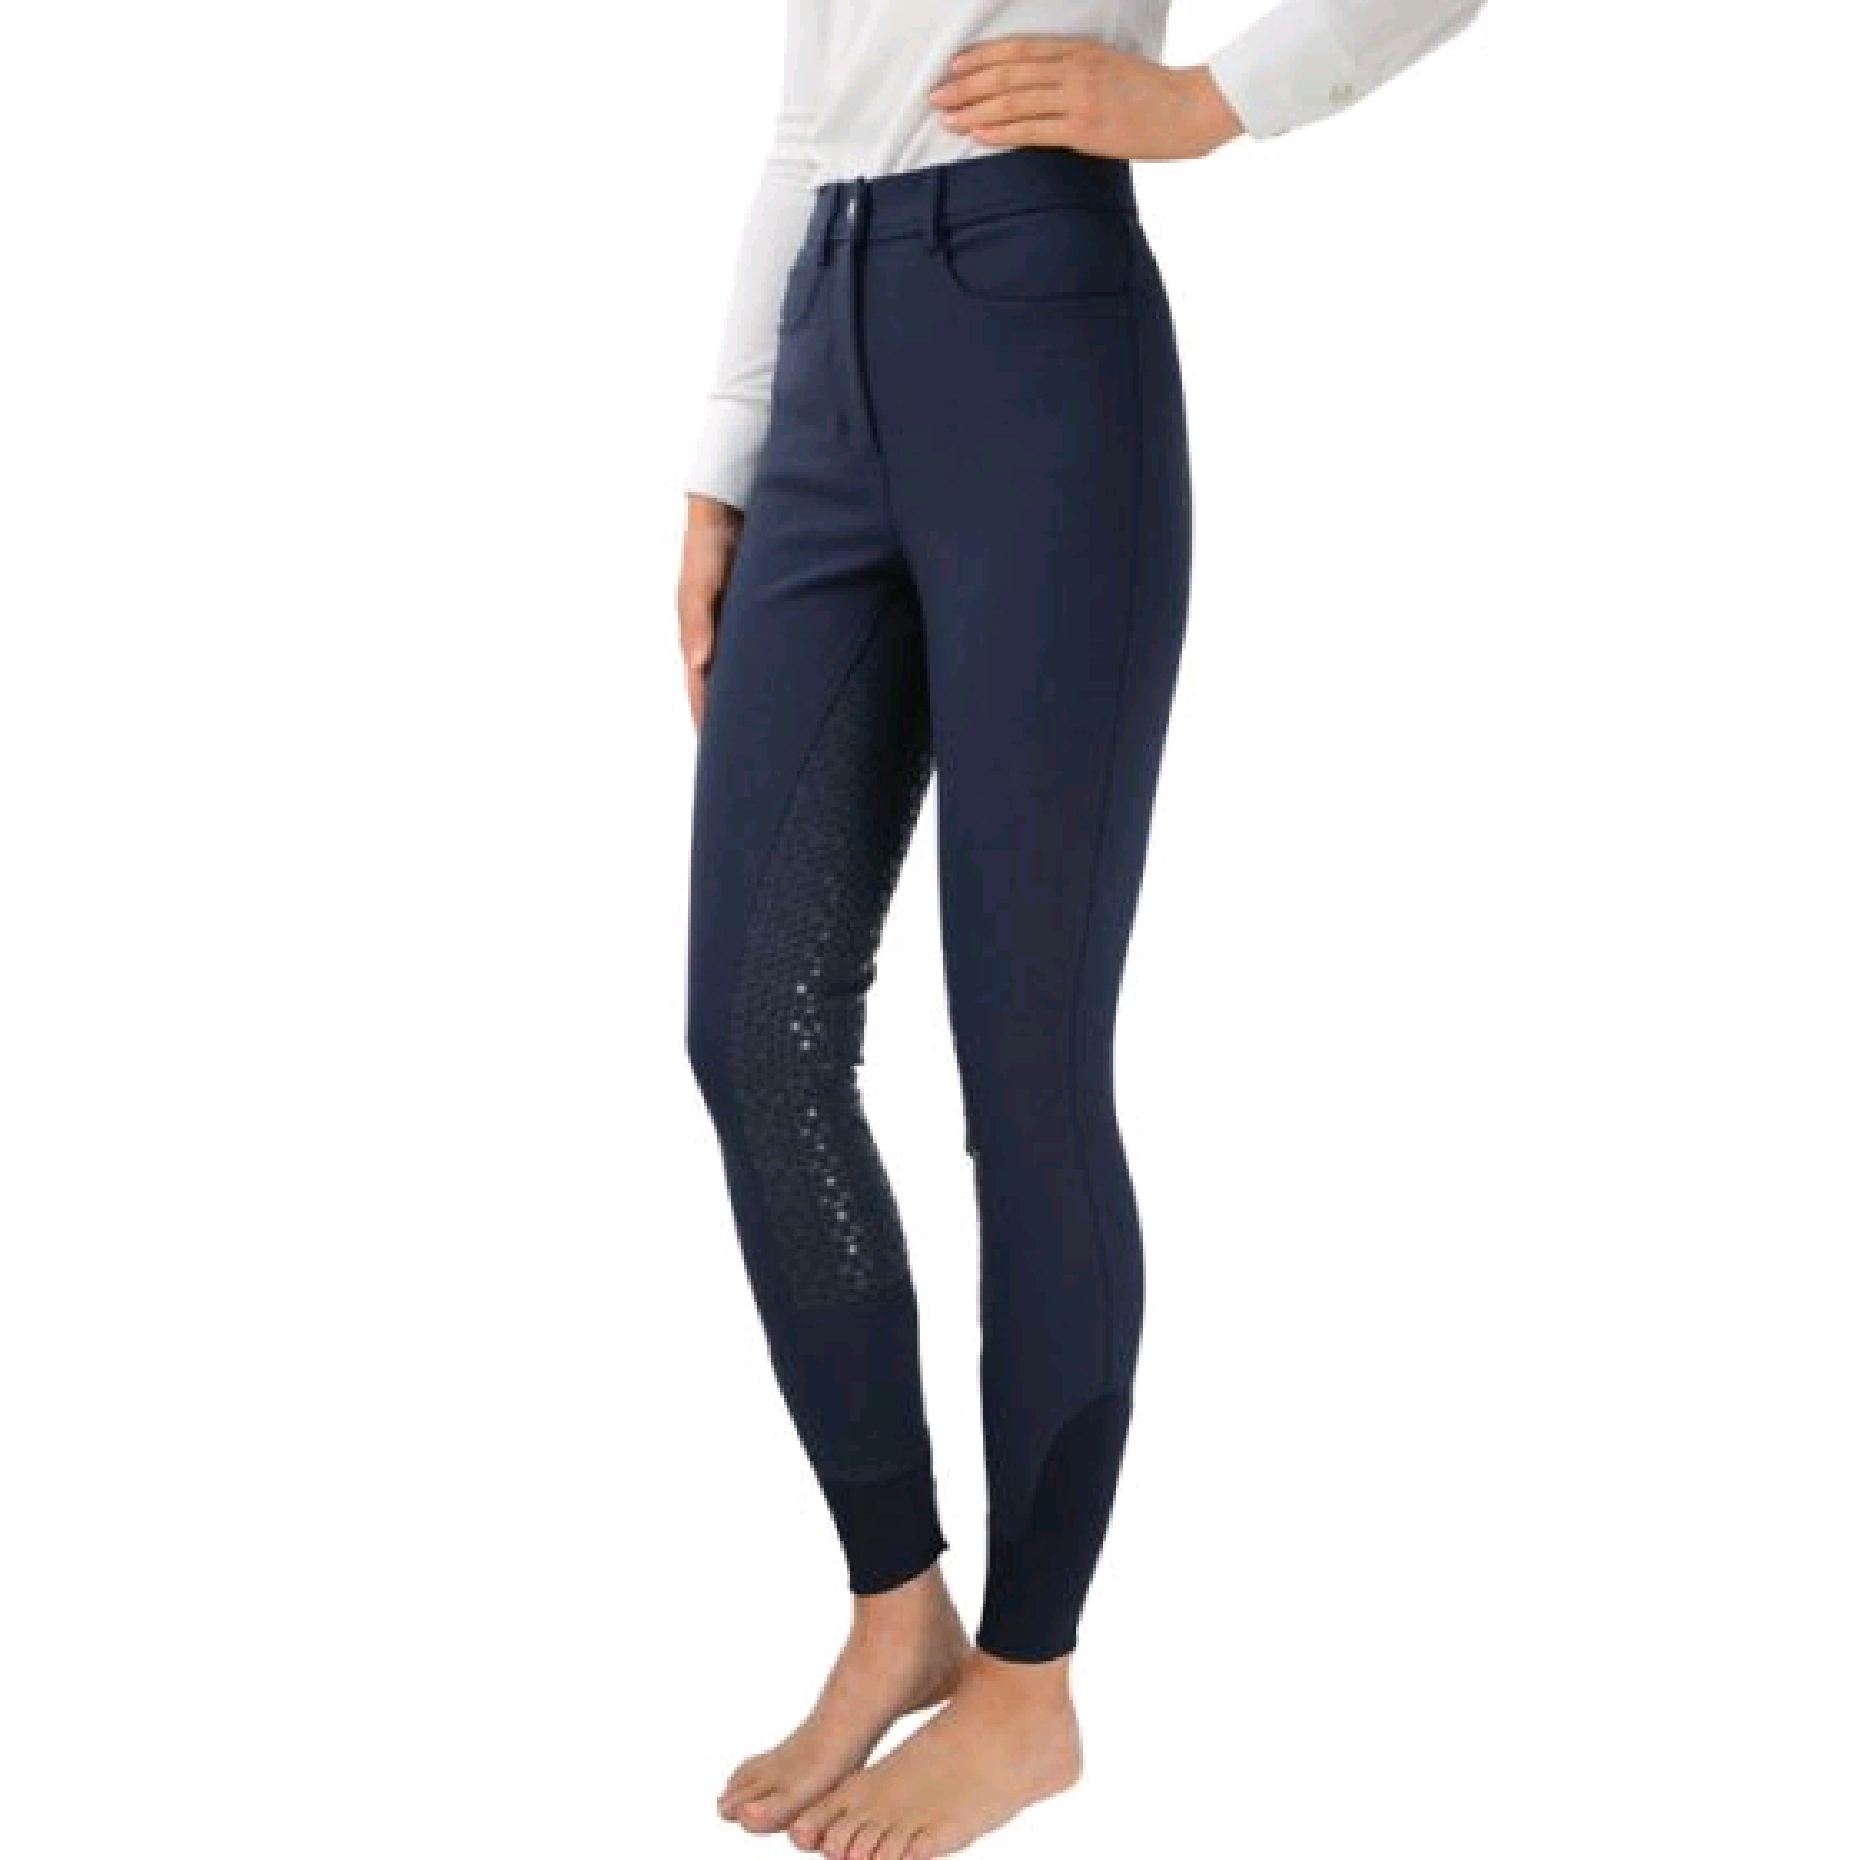 HY Sarah Jane Breeches